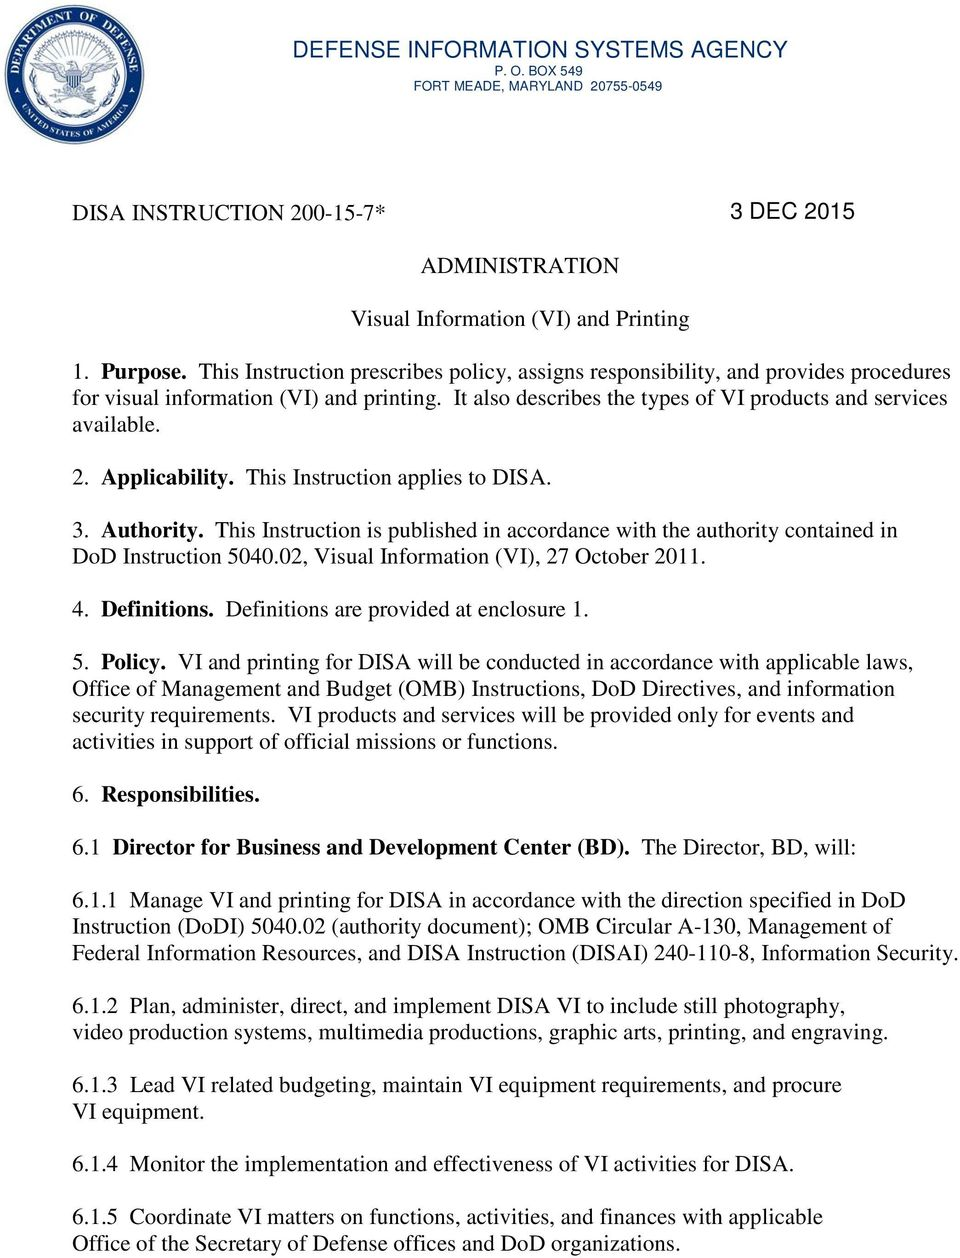 Applicability. This Instruction applies to DISA. 3. Authority. This Instruction is published in accordance with the authority contained in DoD Instruction 5040.